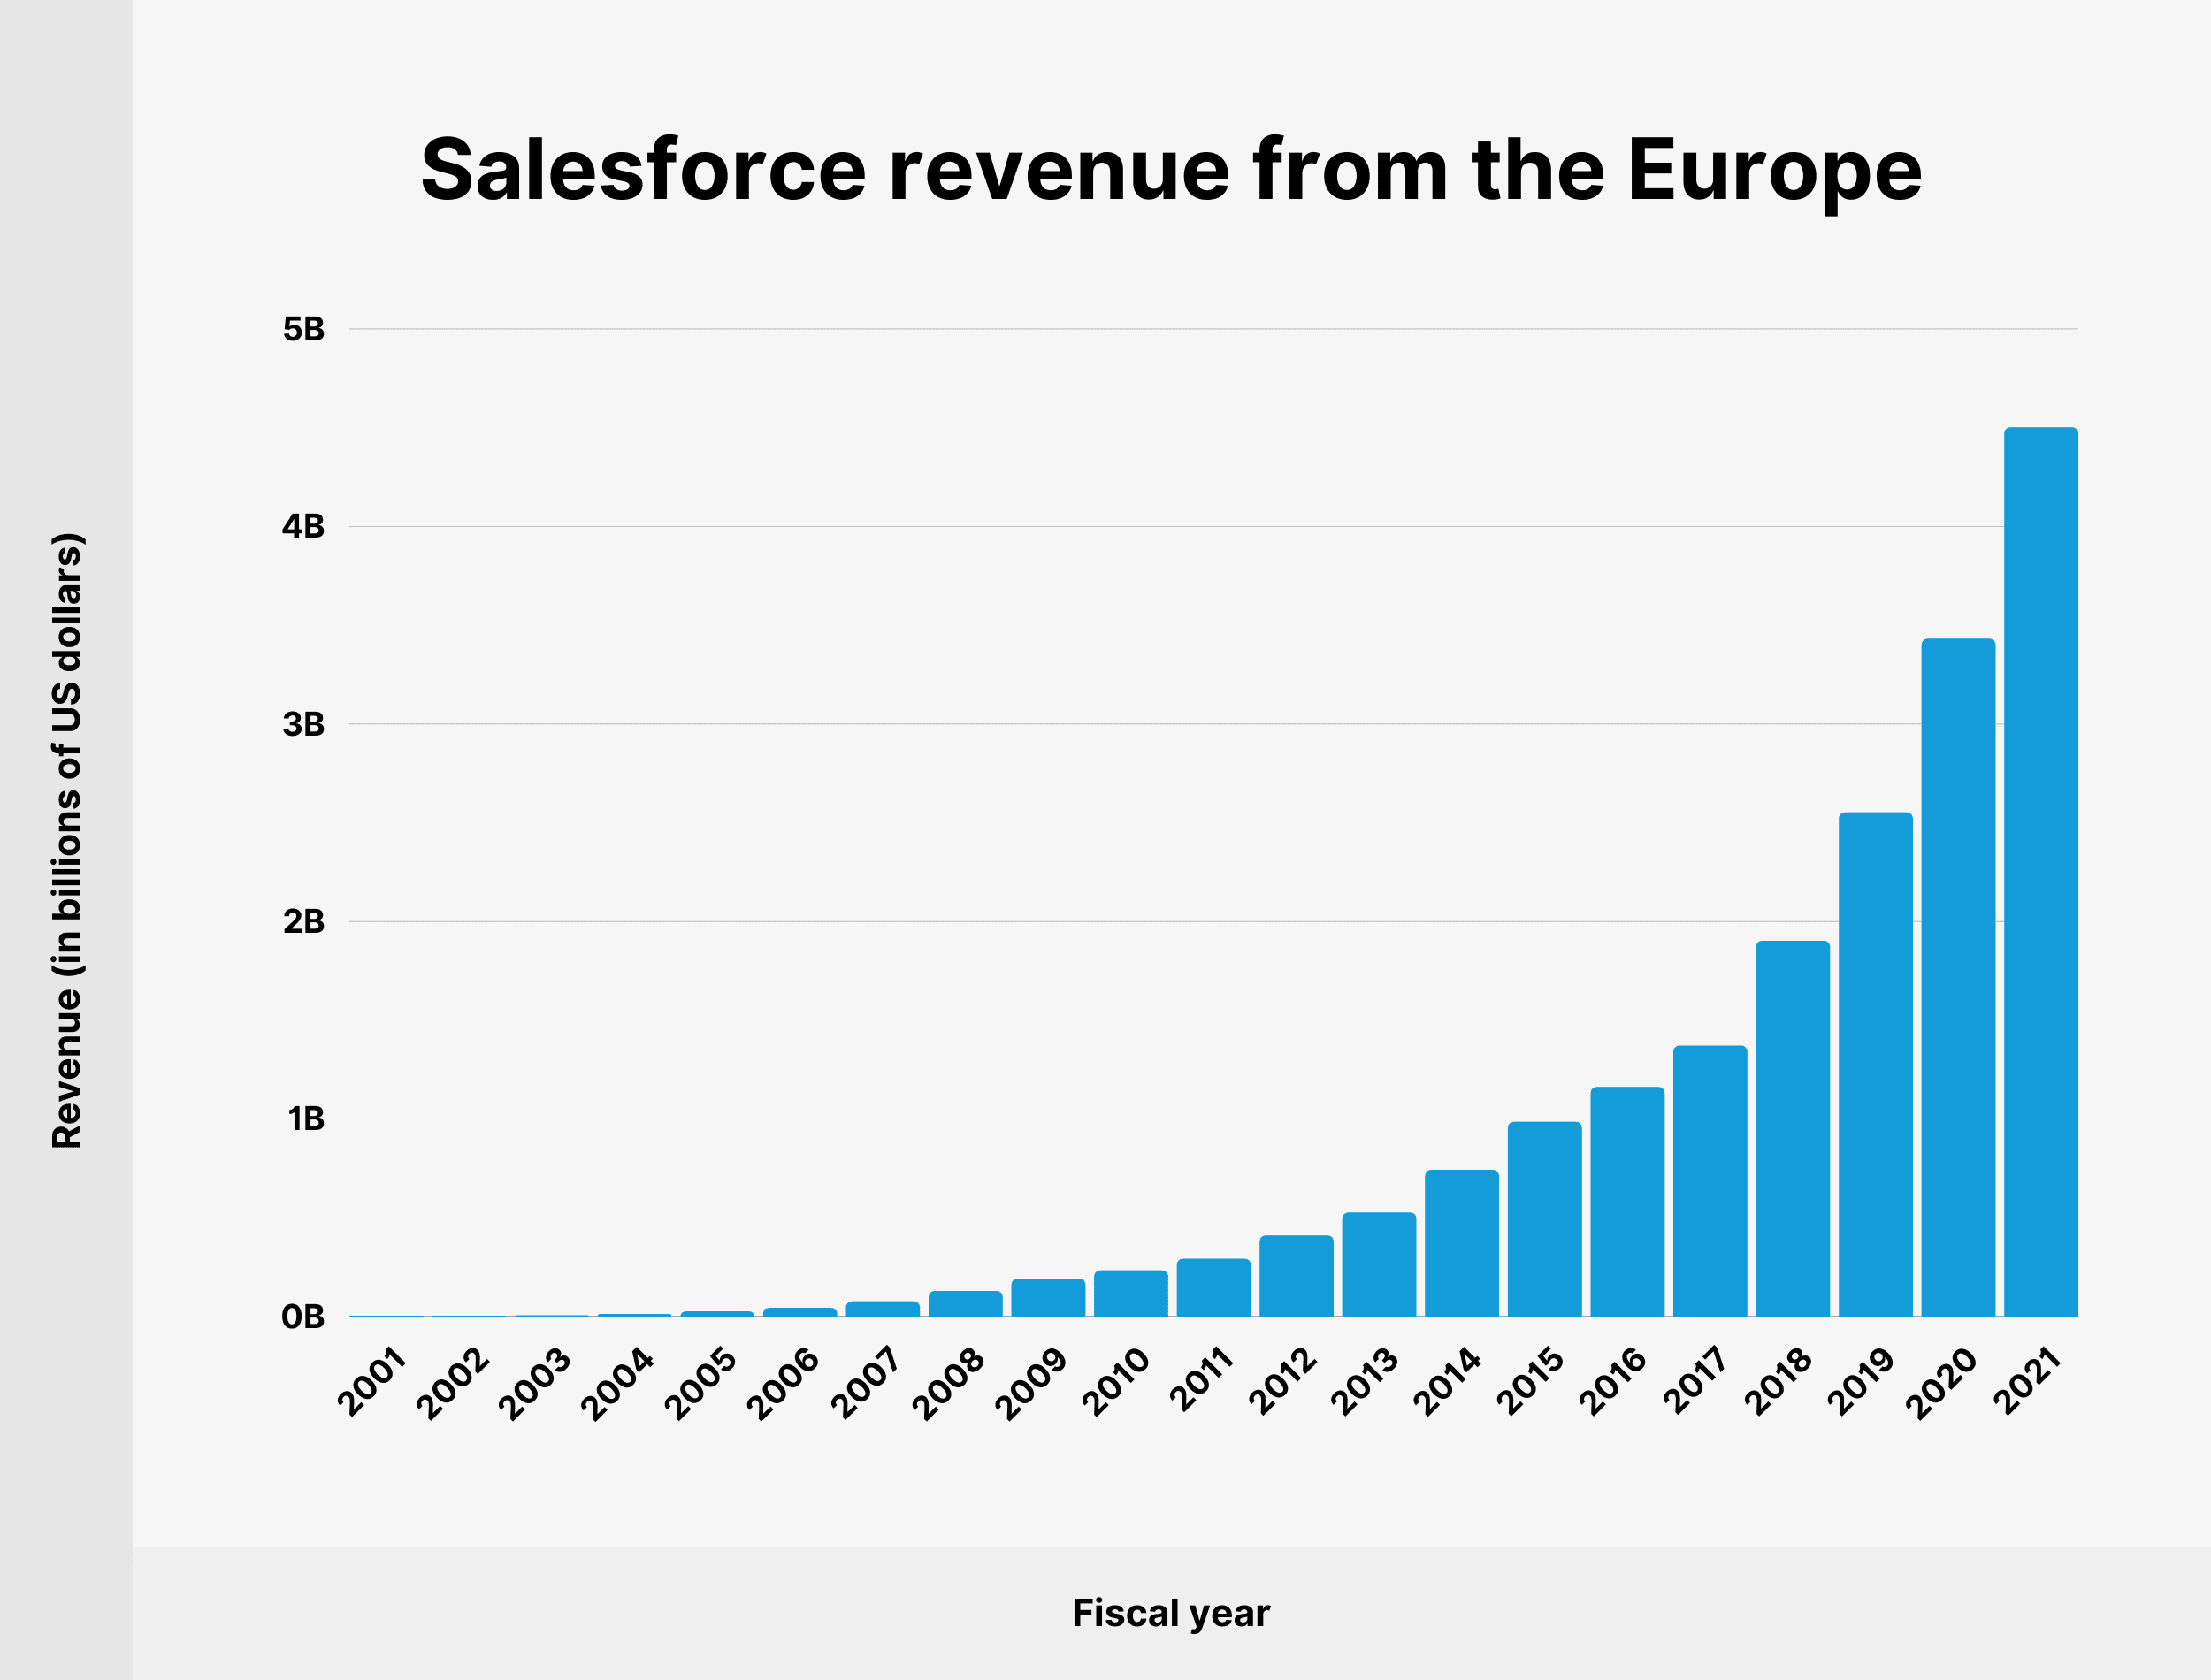 Salesforce revenue from the Europe